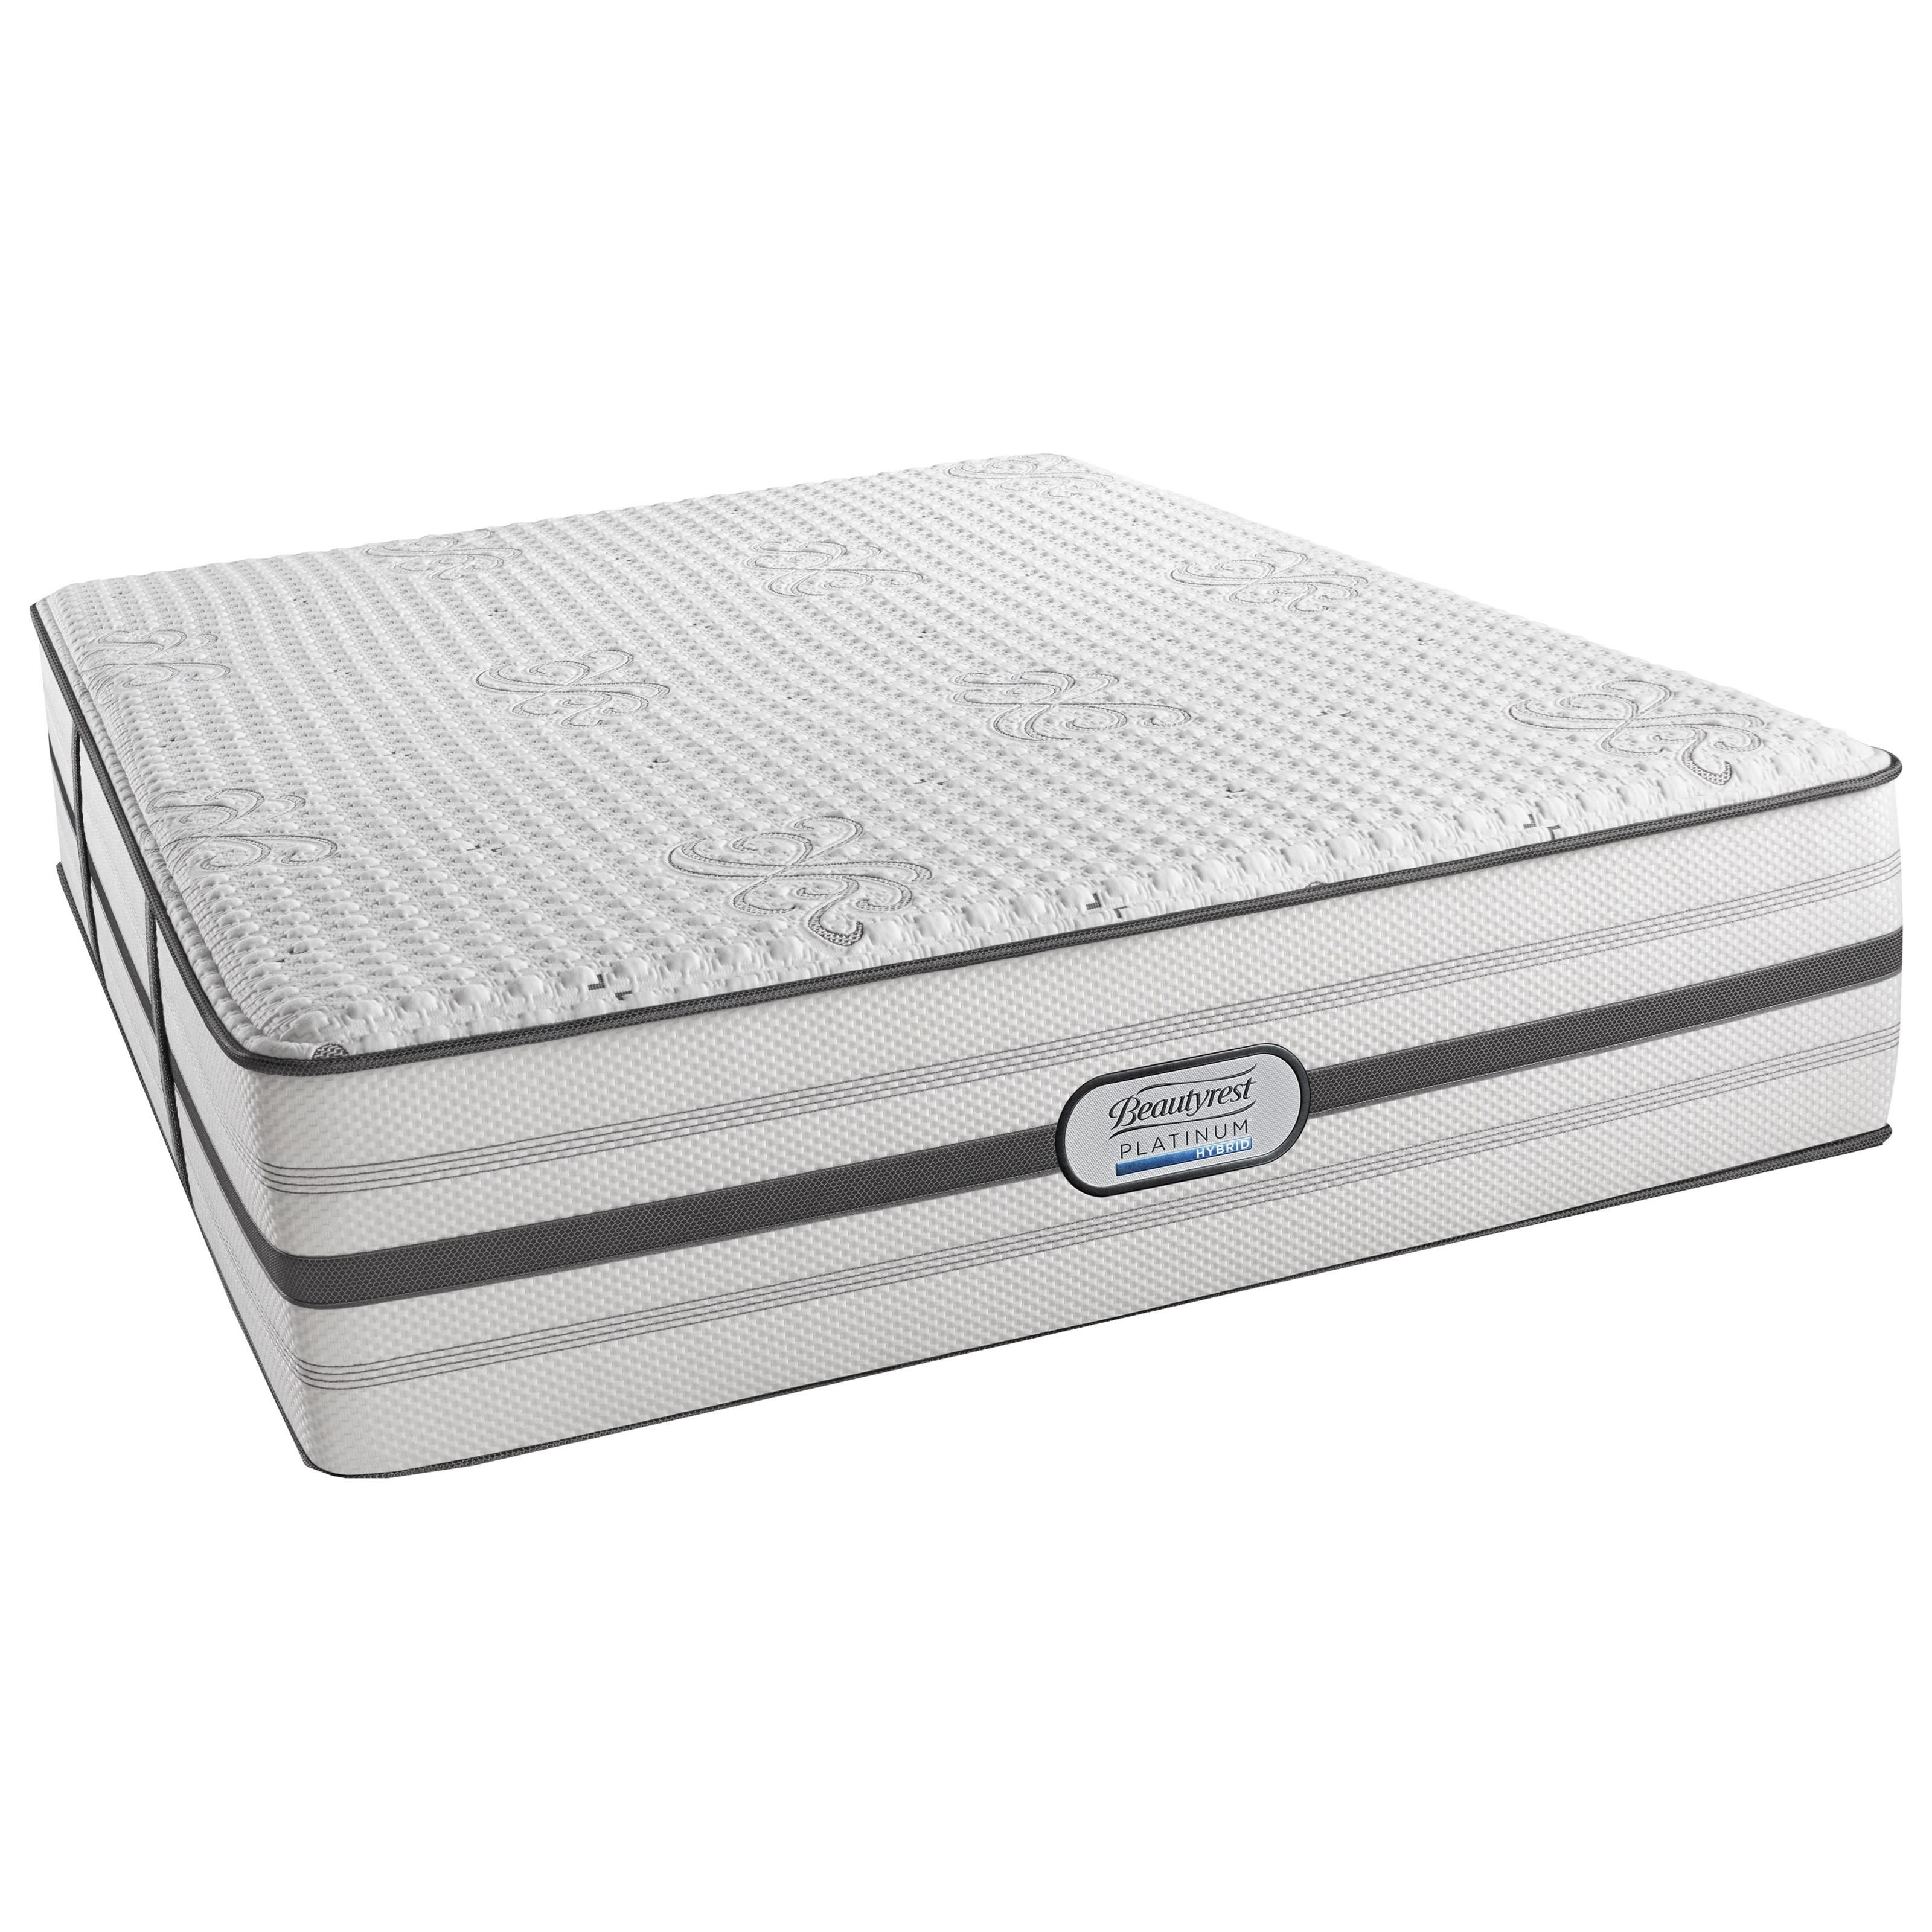 Beautyrest Platinum Hybrid Maddie Twin XL Luxury Firm Adjustable Set - Item Number: BRHLV3LF-TXL+SM2-TXL